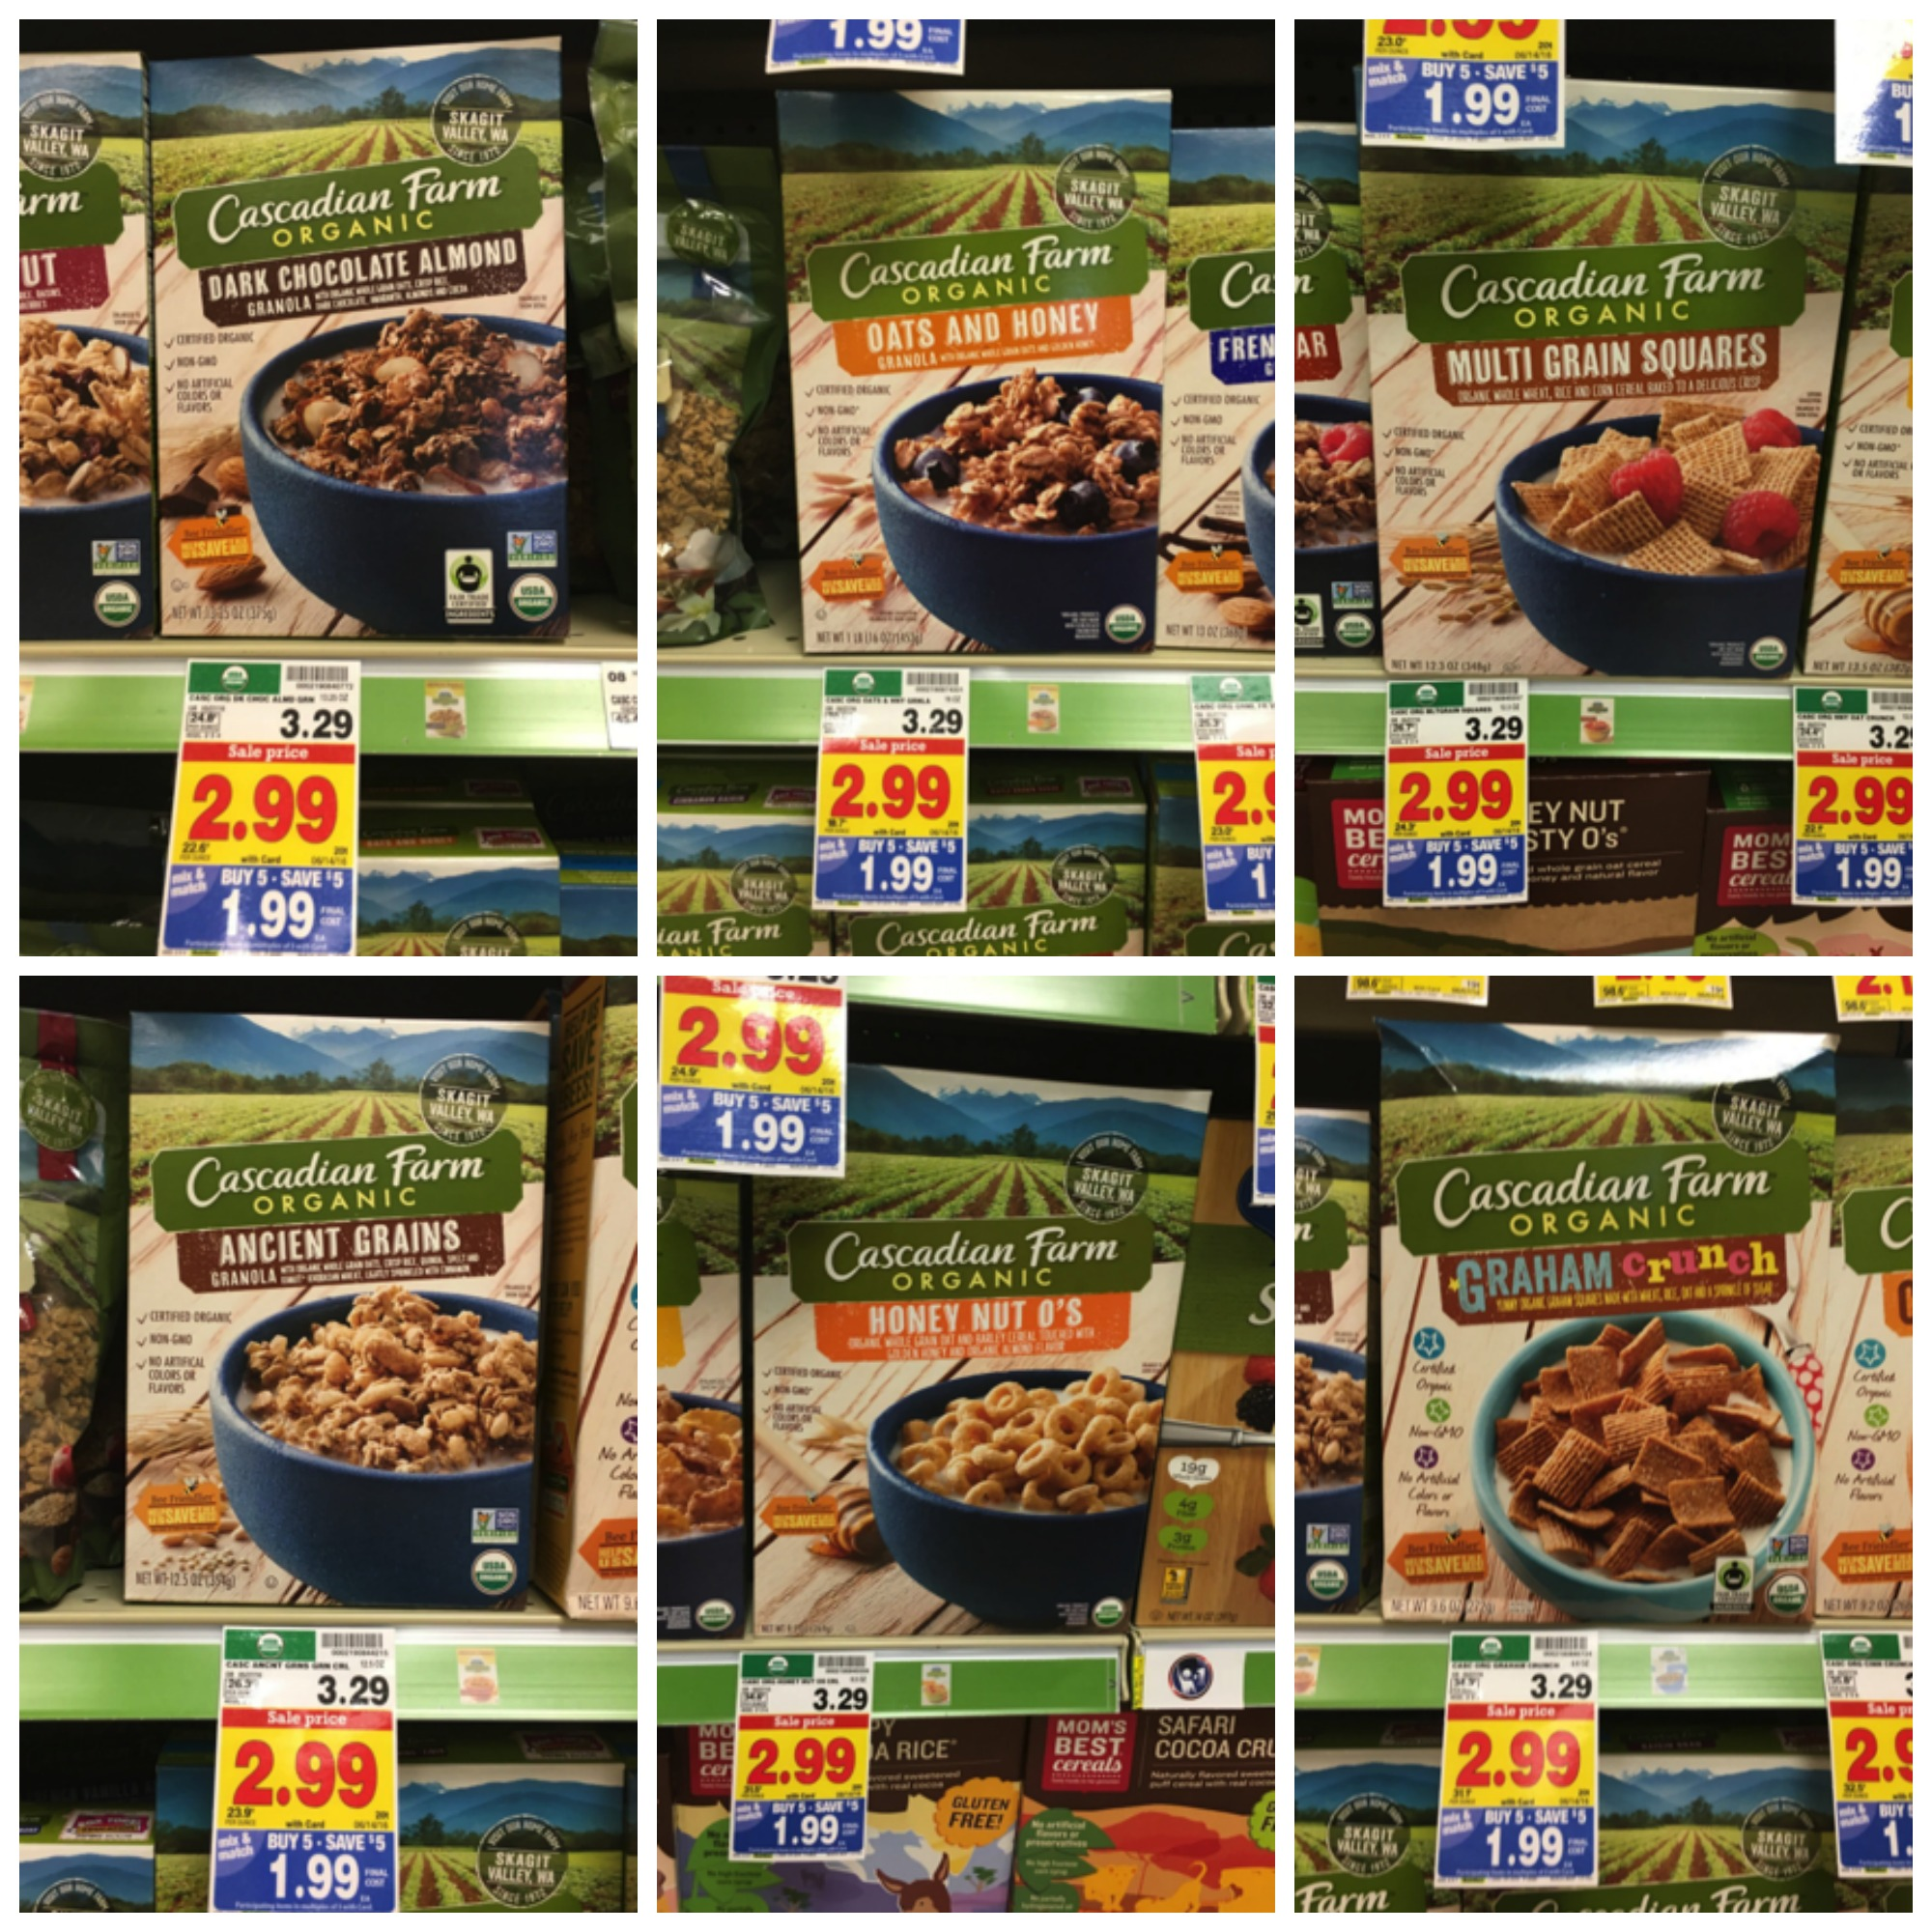 cascadian farm cereal collage